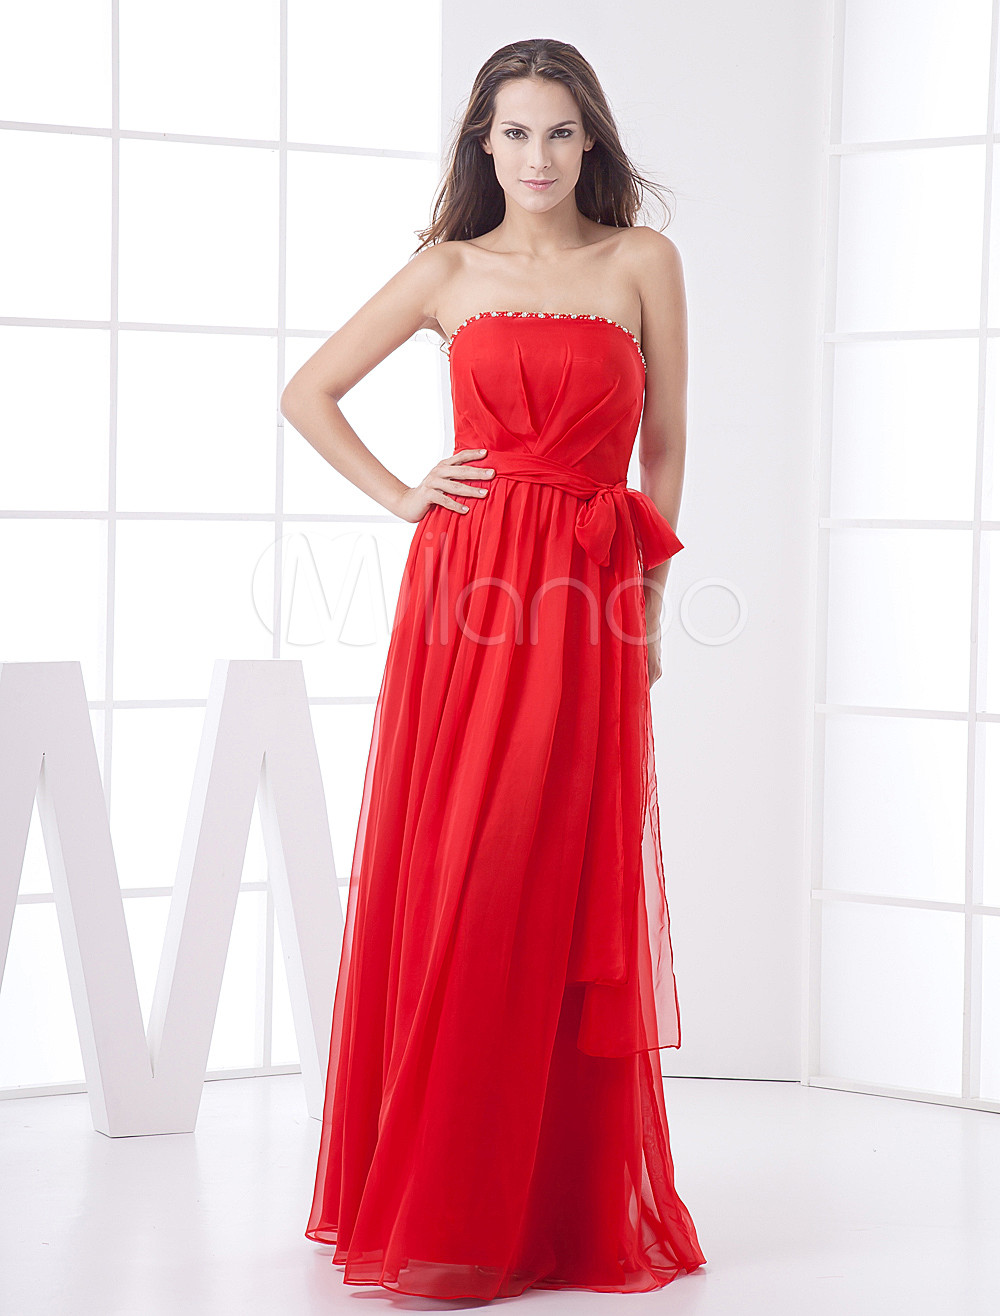 Red Strapless Bow Chiffon Bridesmaid Dress